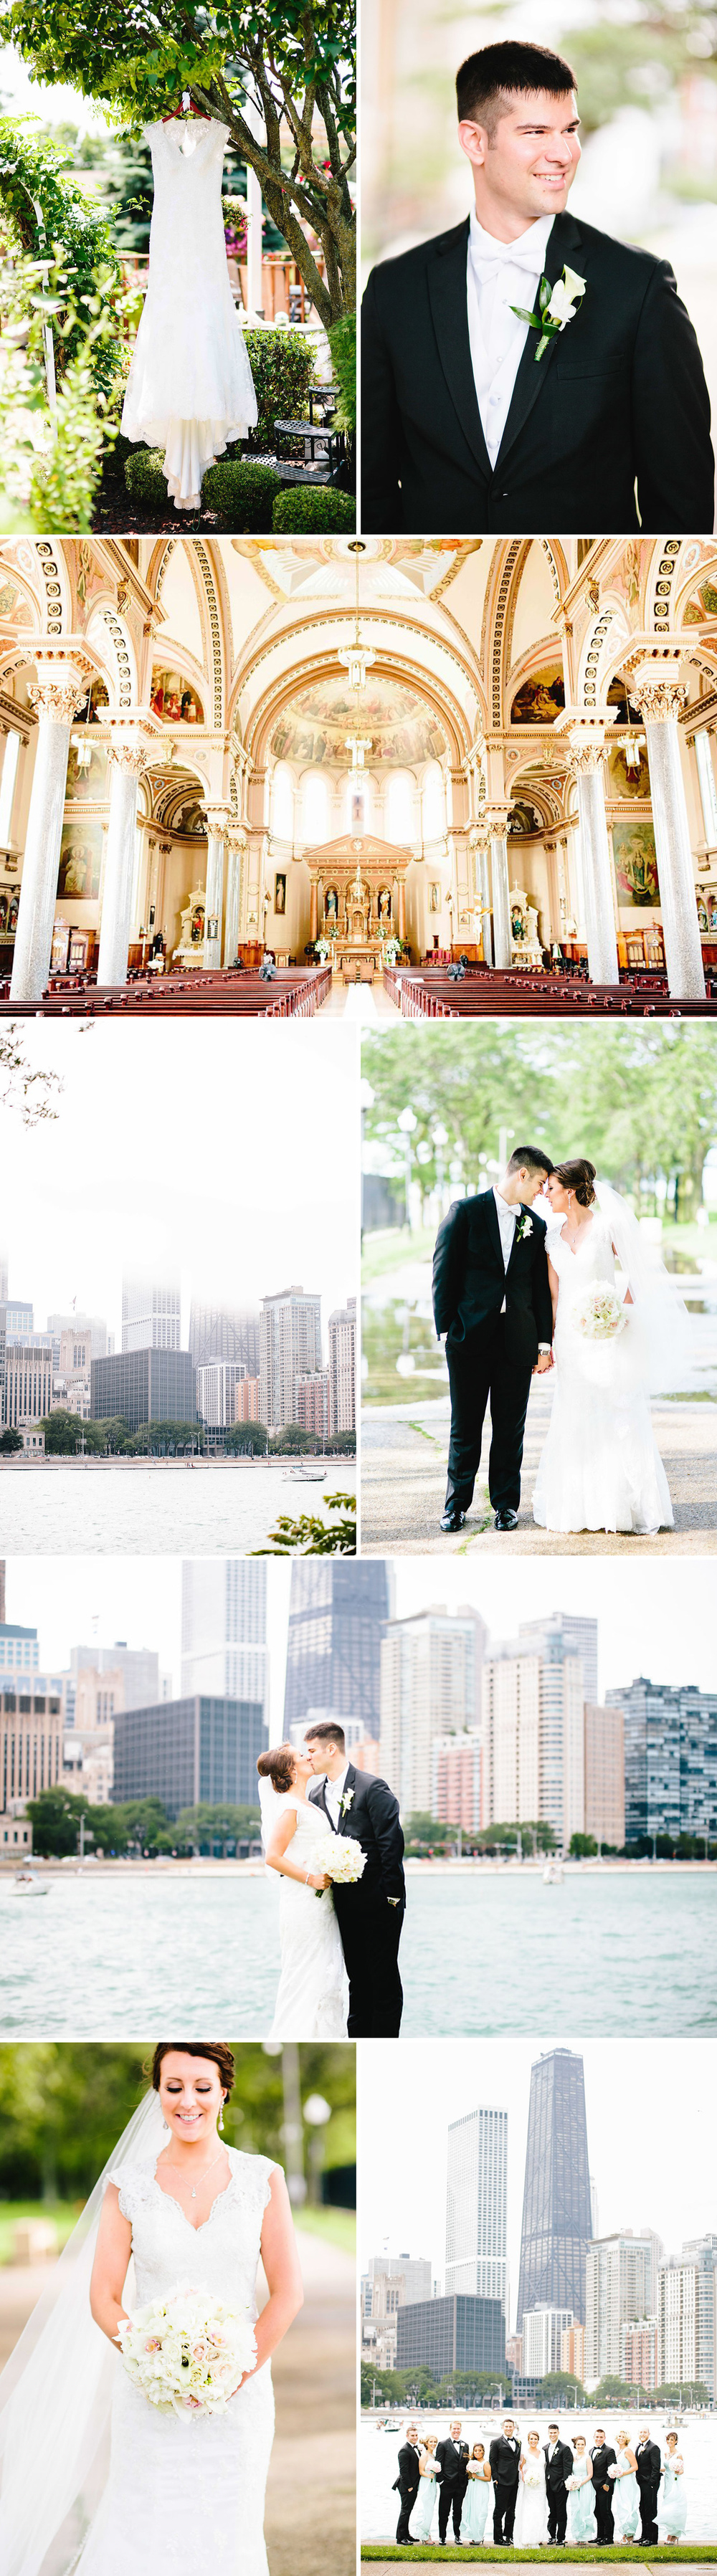 chicago-fine-art-wedding-photography-harris